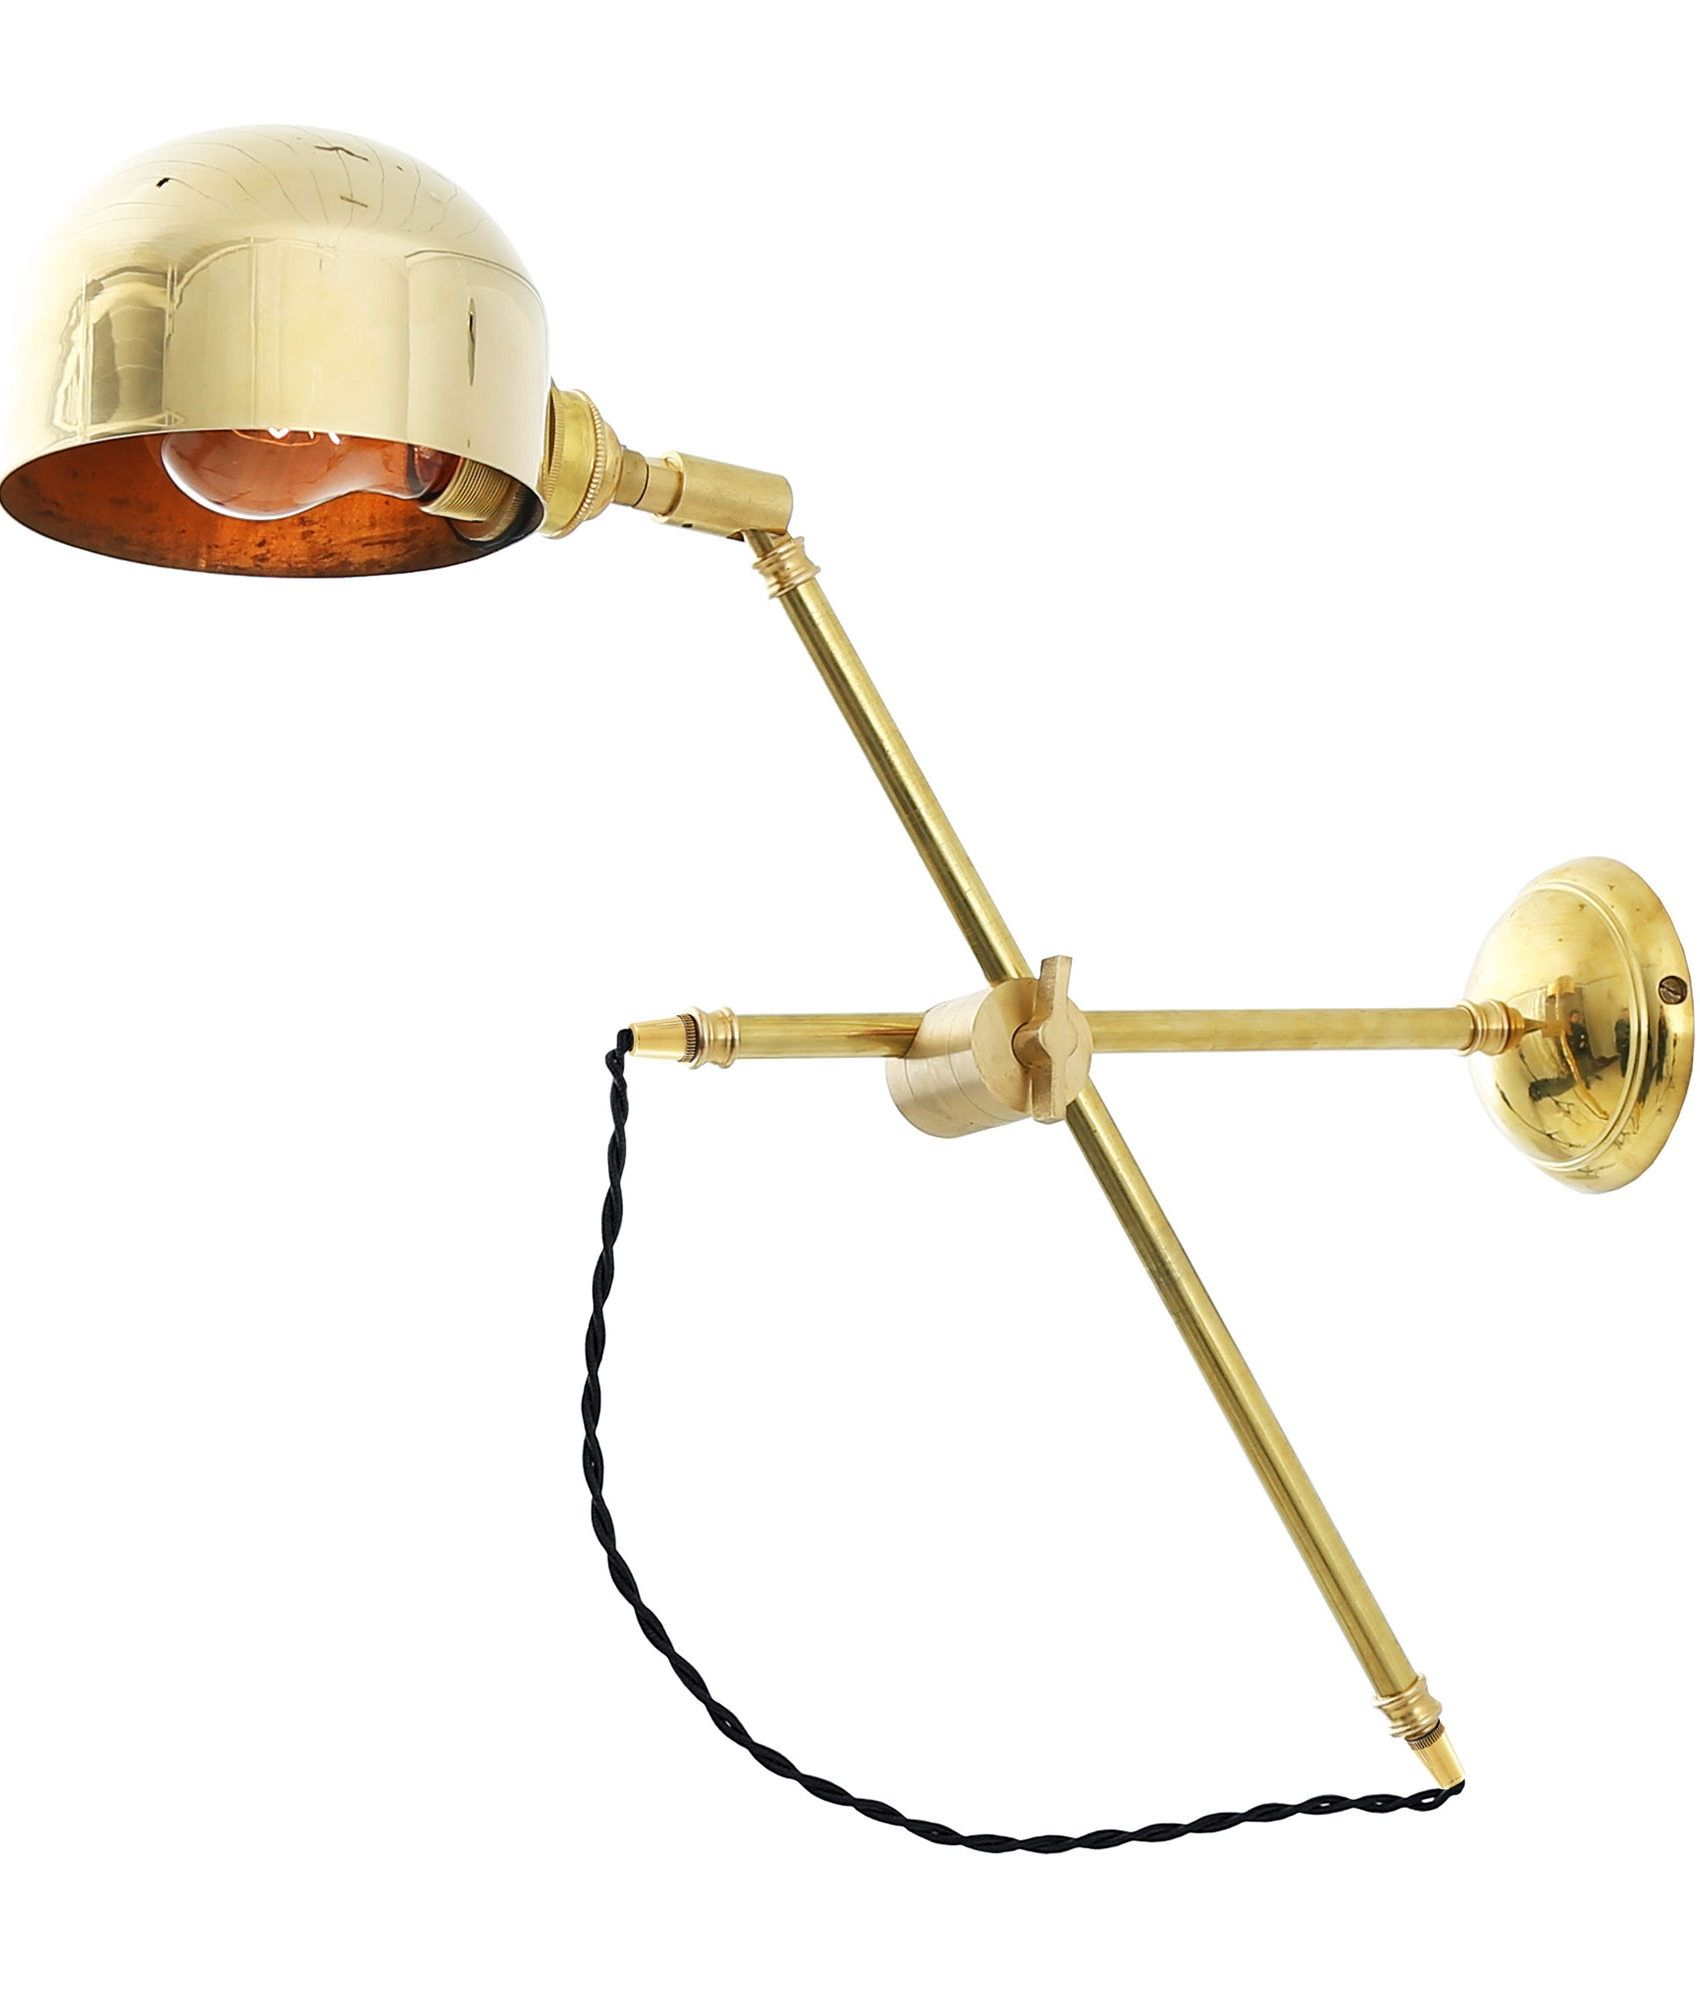 Polished Brass Fully Adjustable Swing Arm Wall Light Swing Arm Wall Light Wall Lights Polished Brass